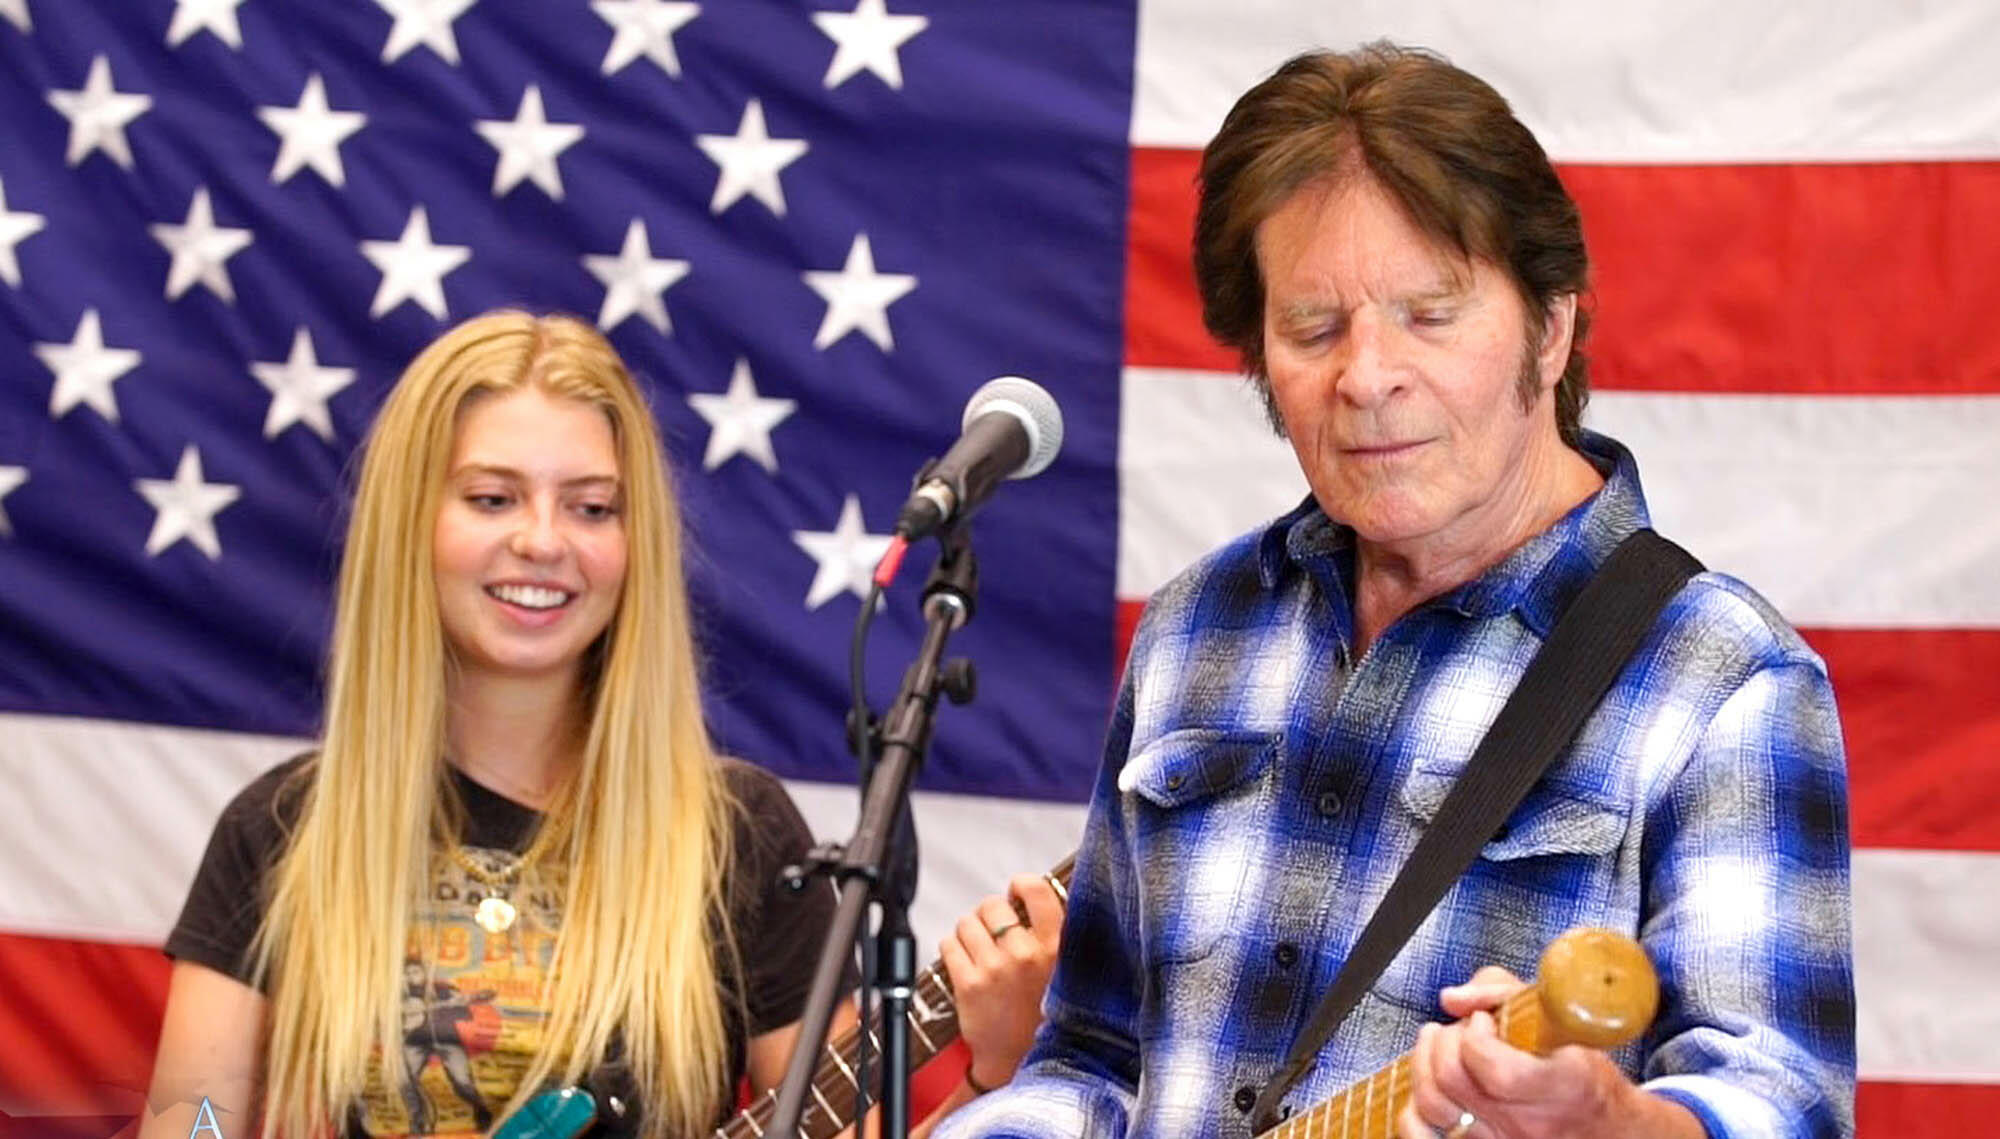 John Fogerty Announces New Album, 'Fogerty's Factory,' With His Kids